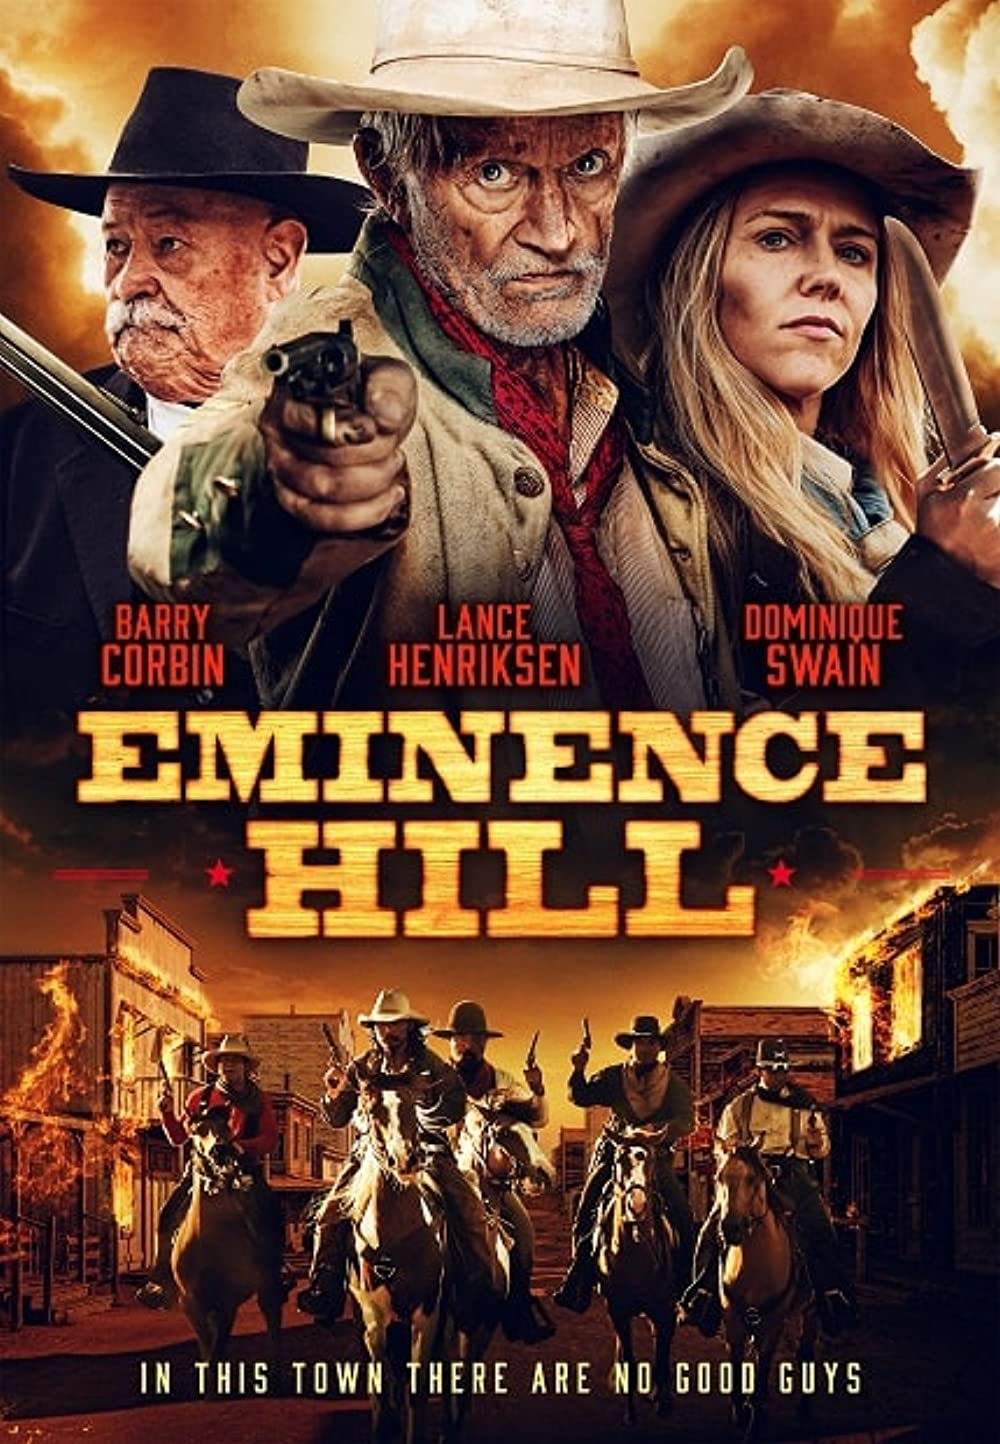 Eminence Hill (2019) Hindi (Voice Over) Dubbed+ English [Dual Audio] BluRay 720p [1XBET]